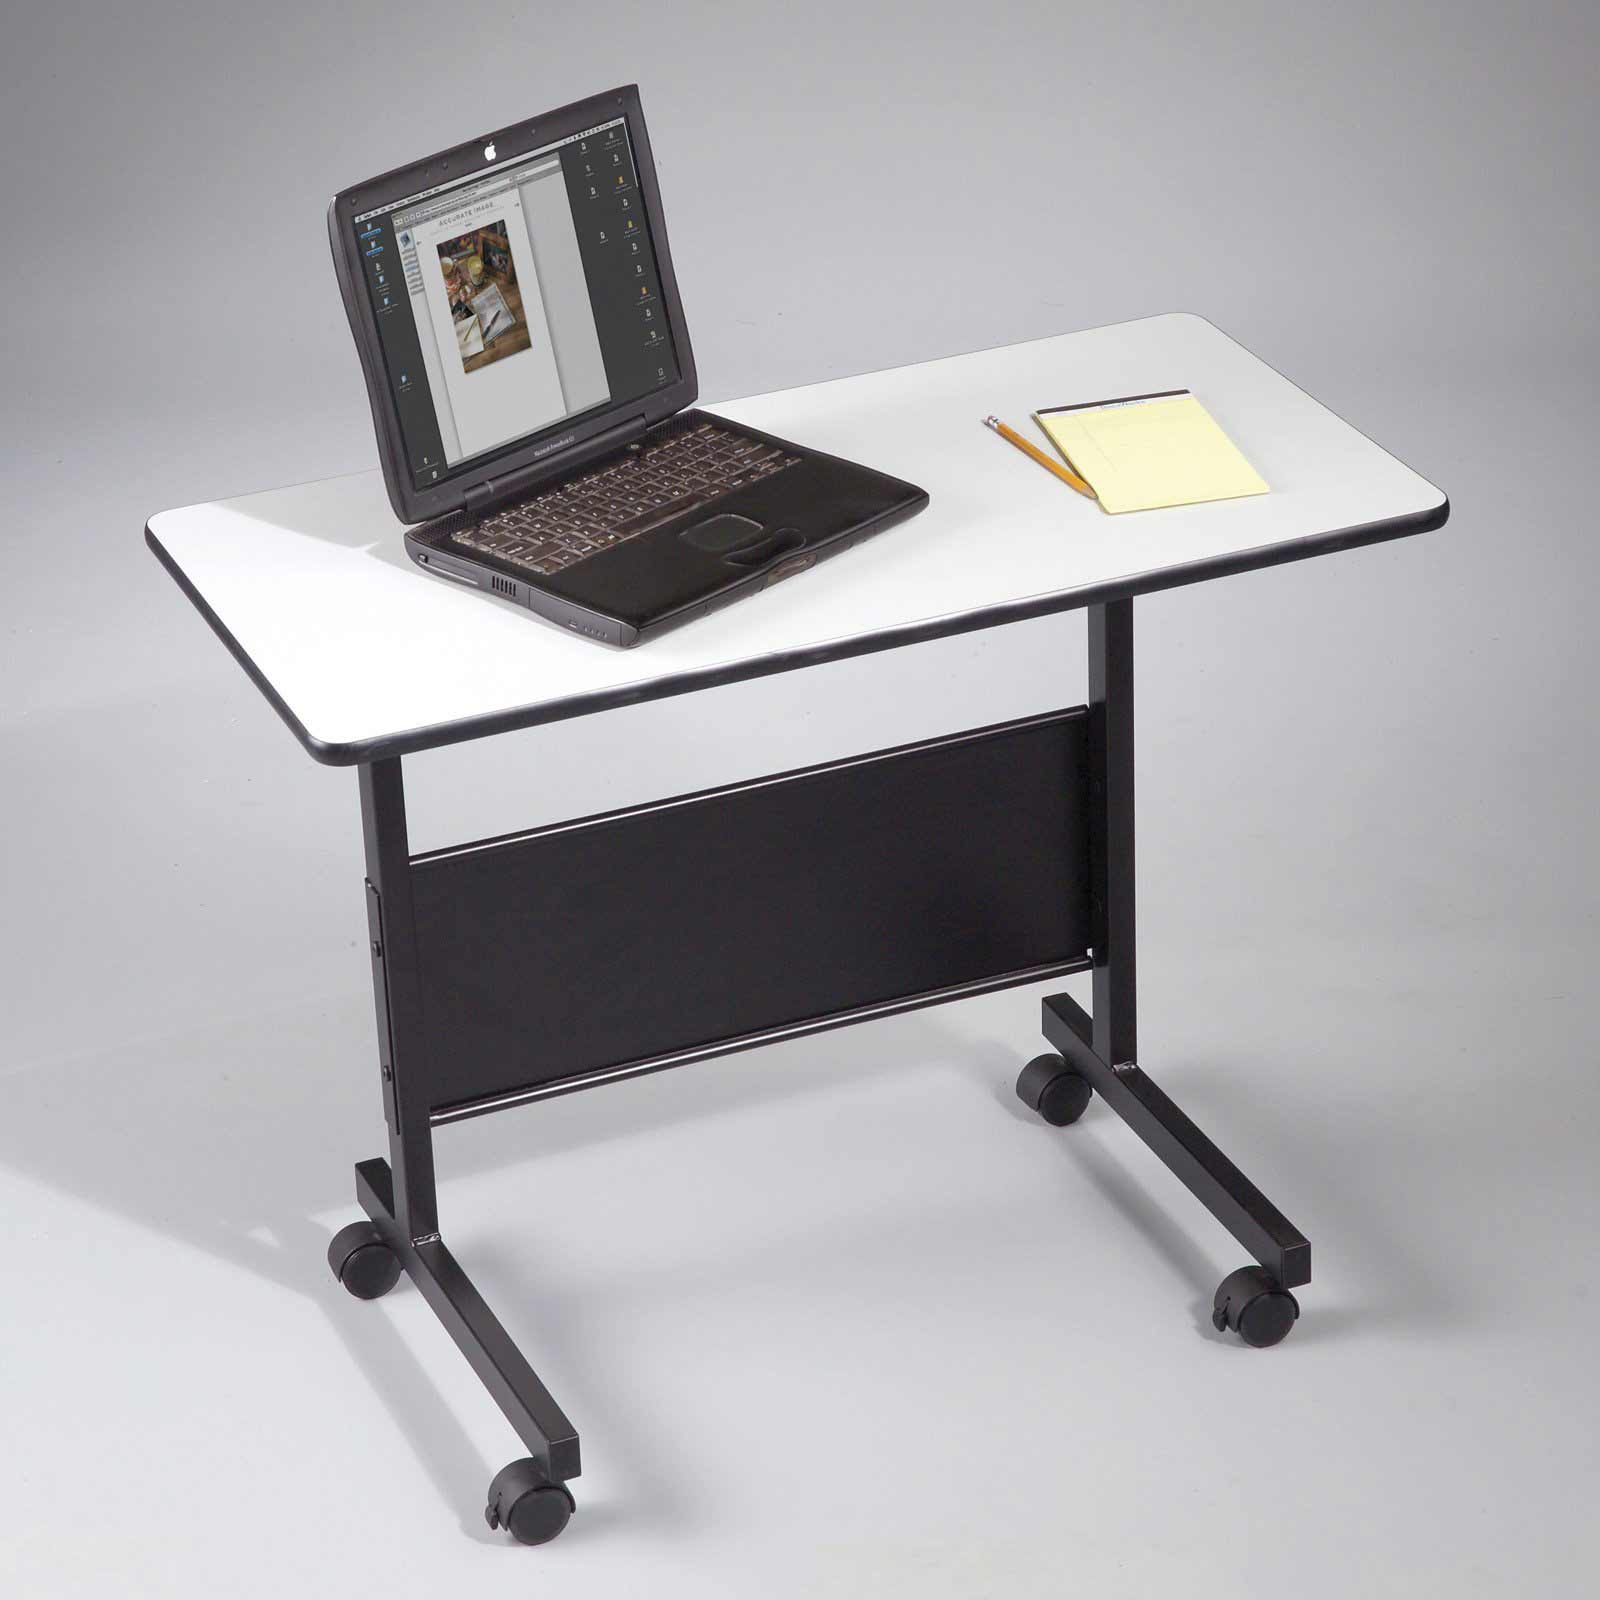 LT Mobile Laptop Table with Wheels